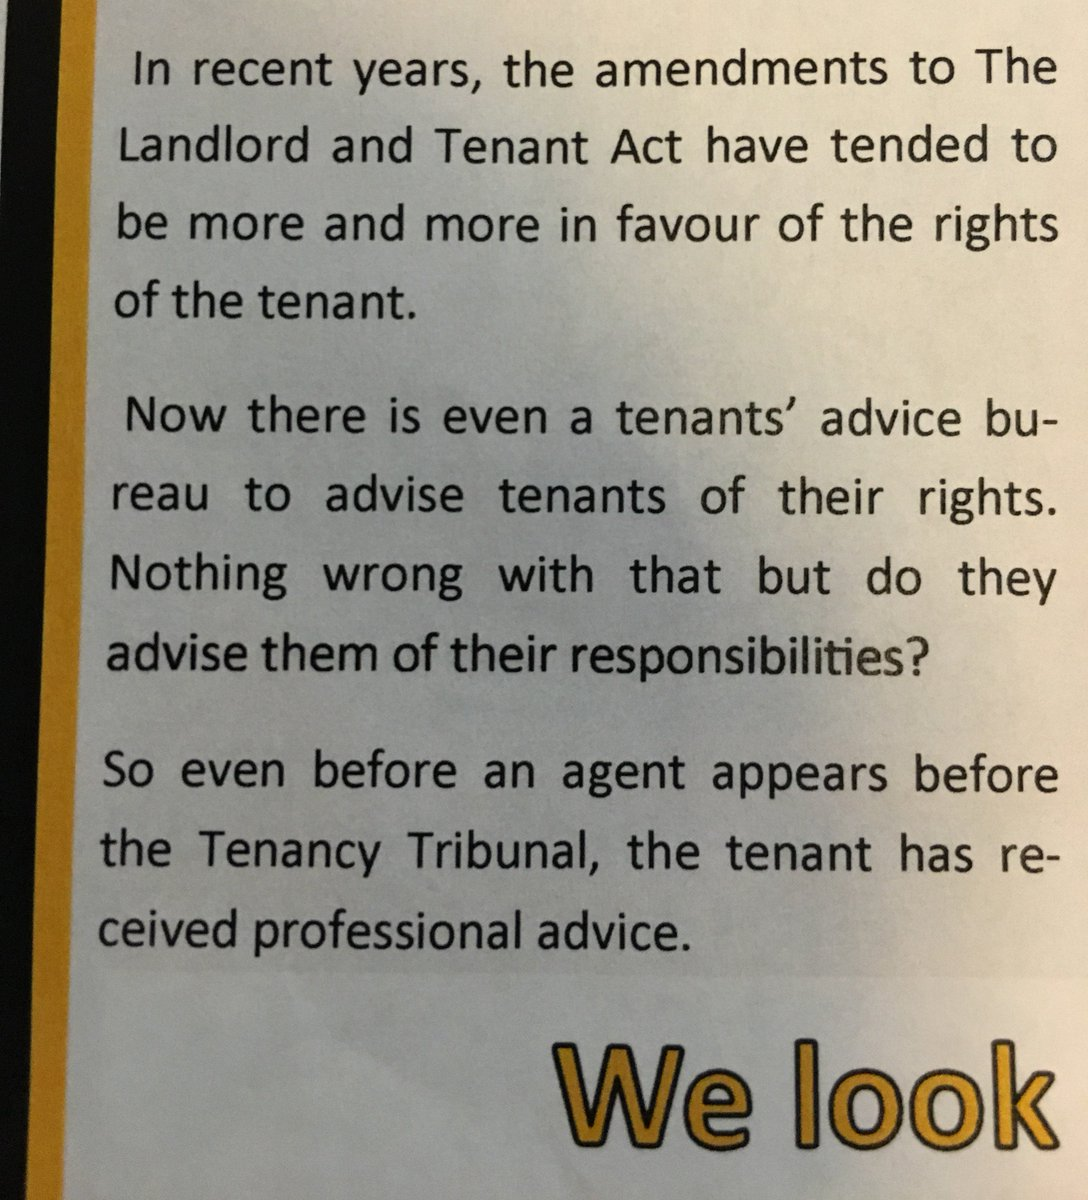 Look at this bullshit from my local real estate. This country has a seriously messed up attitude towards renters. https://t.co/NOCaq8ECKA